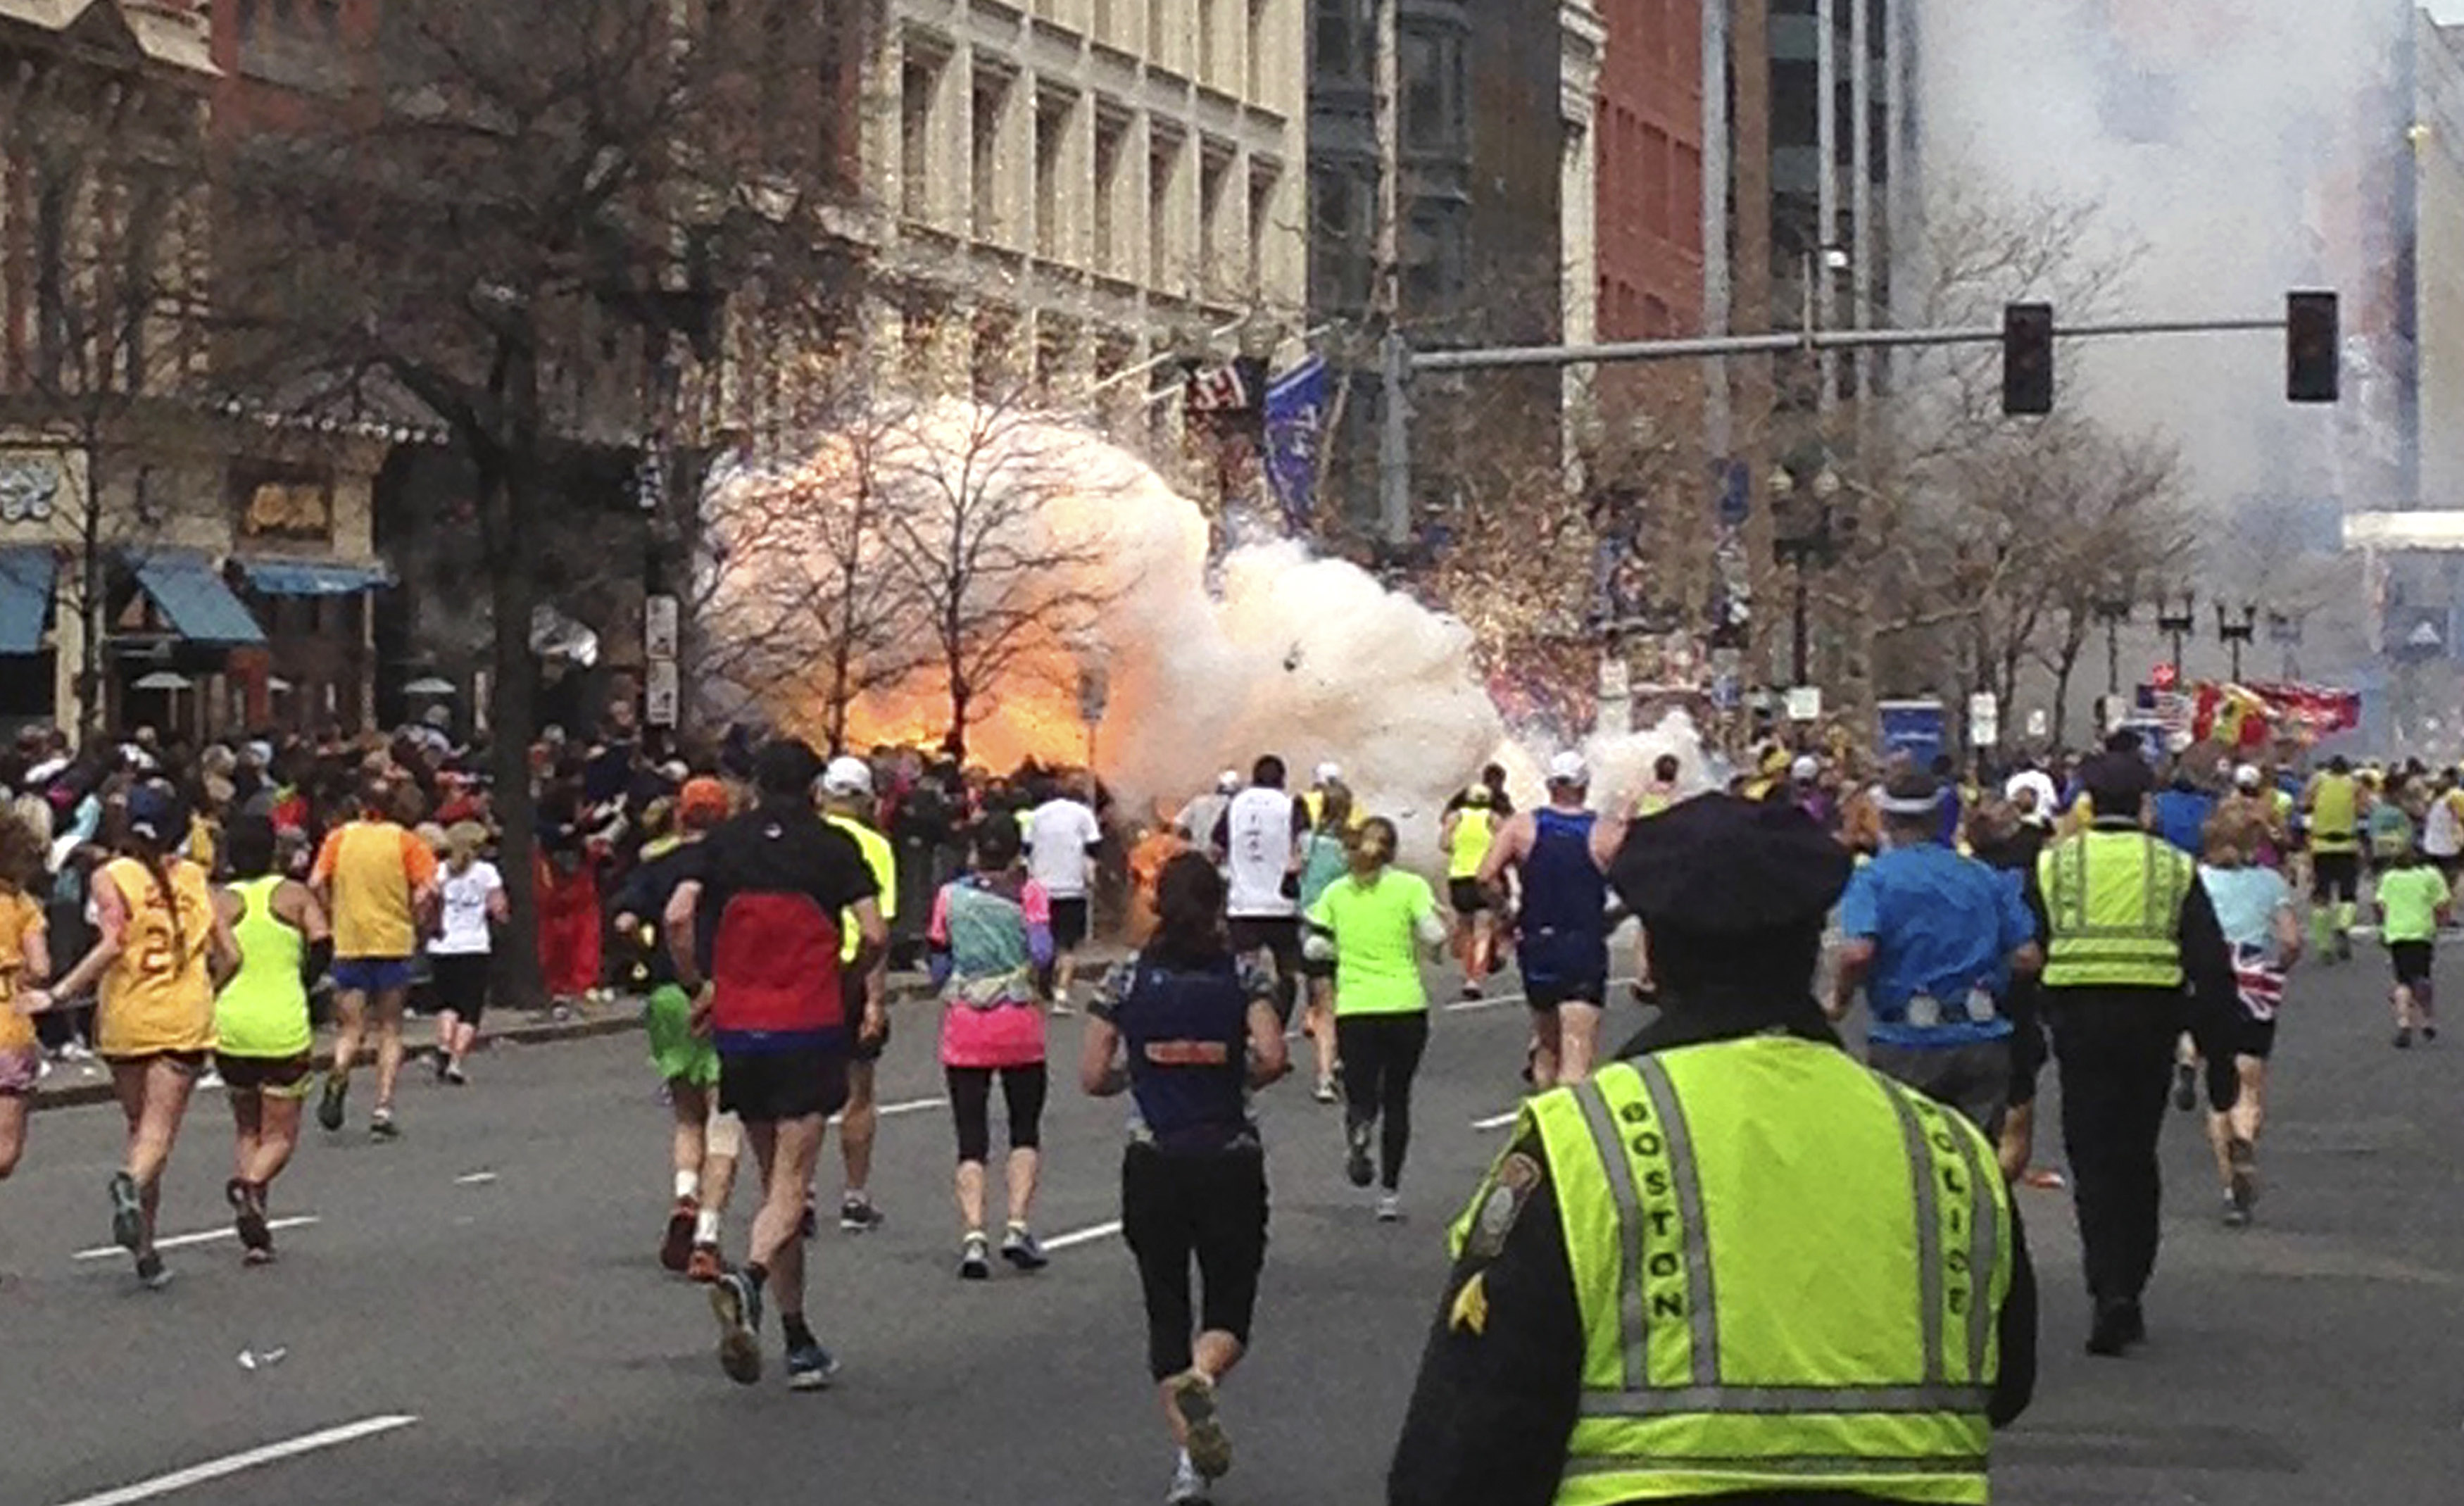 Runners continue to run towards the finish line of the Boston Marathon as an explosion erupts near the finish line of the race in this photo exclusively licensed to Reuters by photographer Dan Lampariello after he took the photo in Boston, Massachusetts, April 15, 2013.